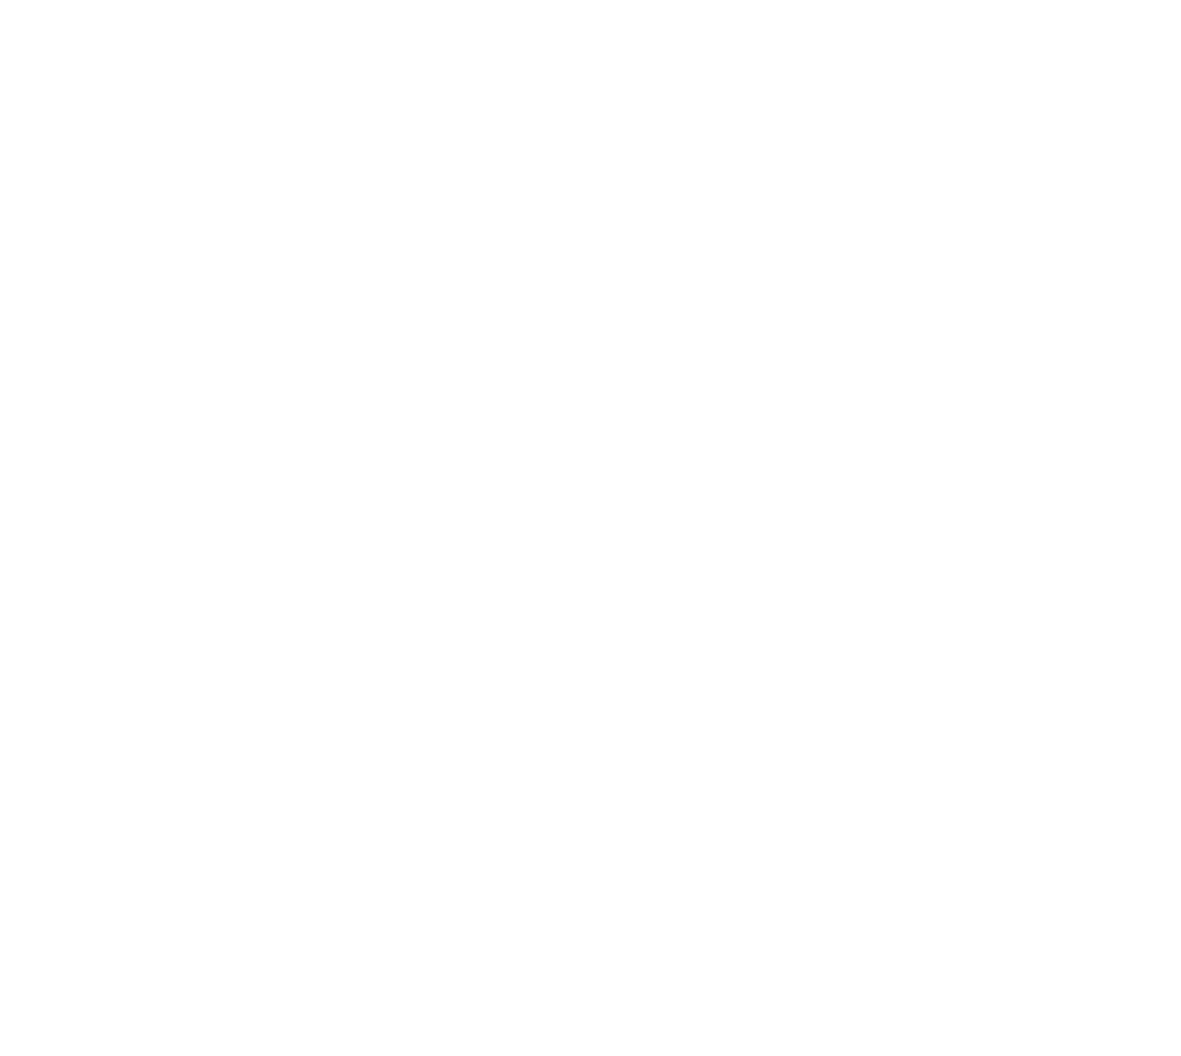 The Old Moat Garden Centre & Cafe